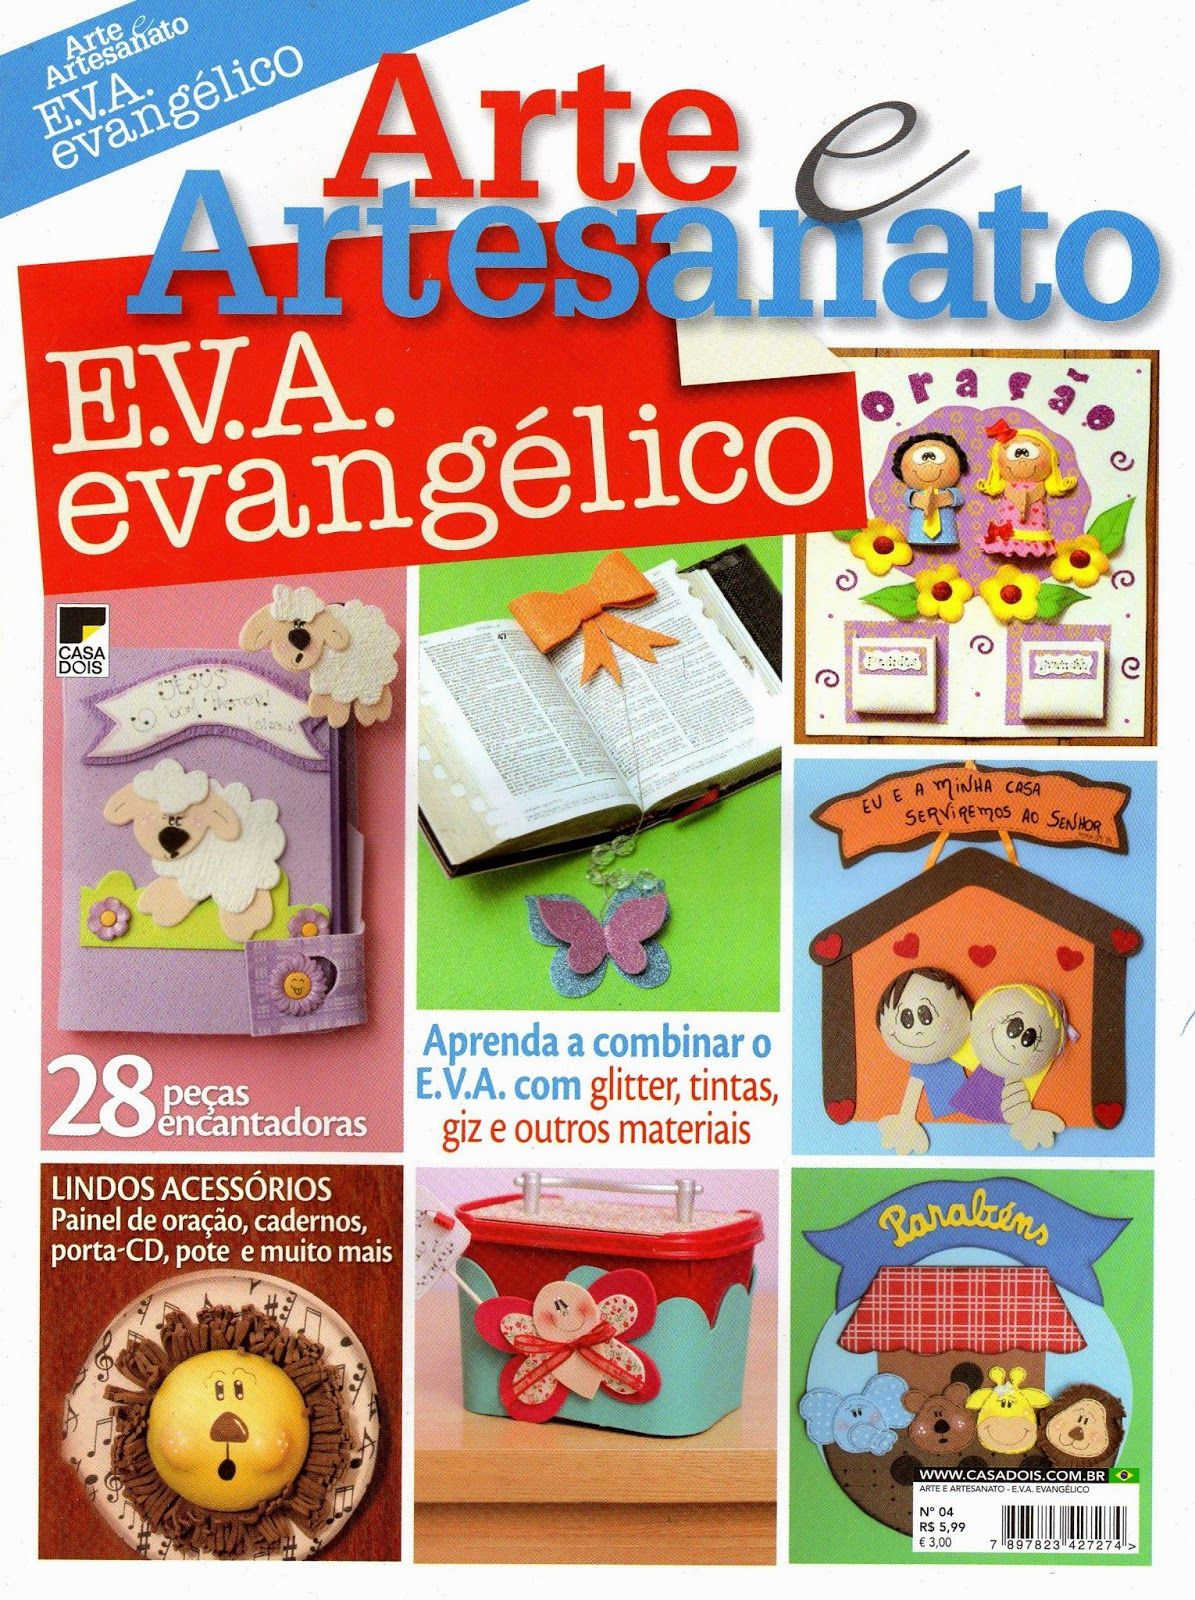 Amado Escola Dominical Infantil ツ: Arte e Artesanato EVA Evangélico  XM88